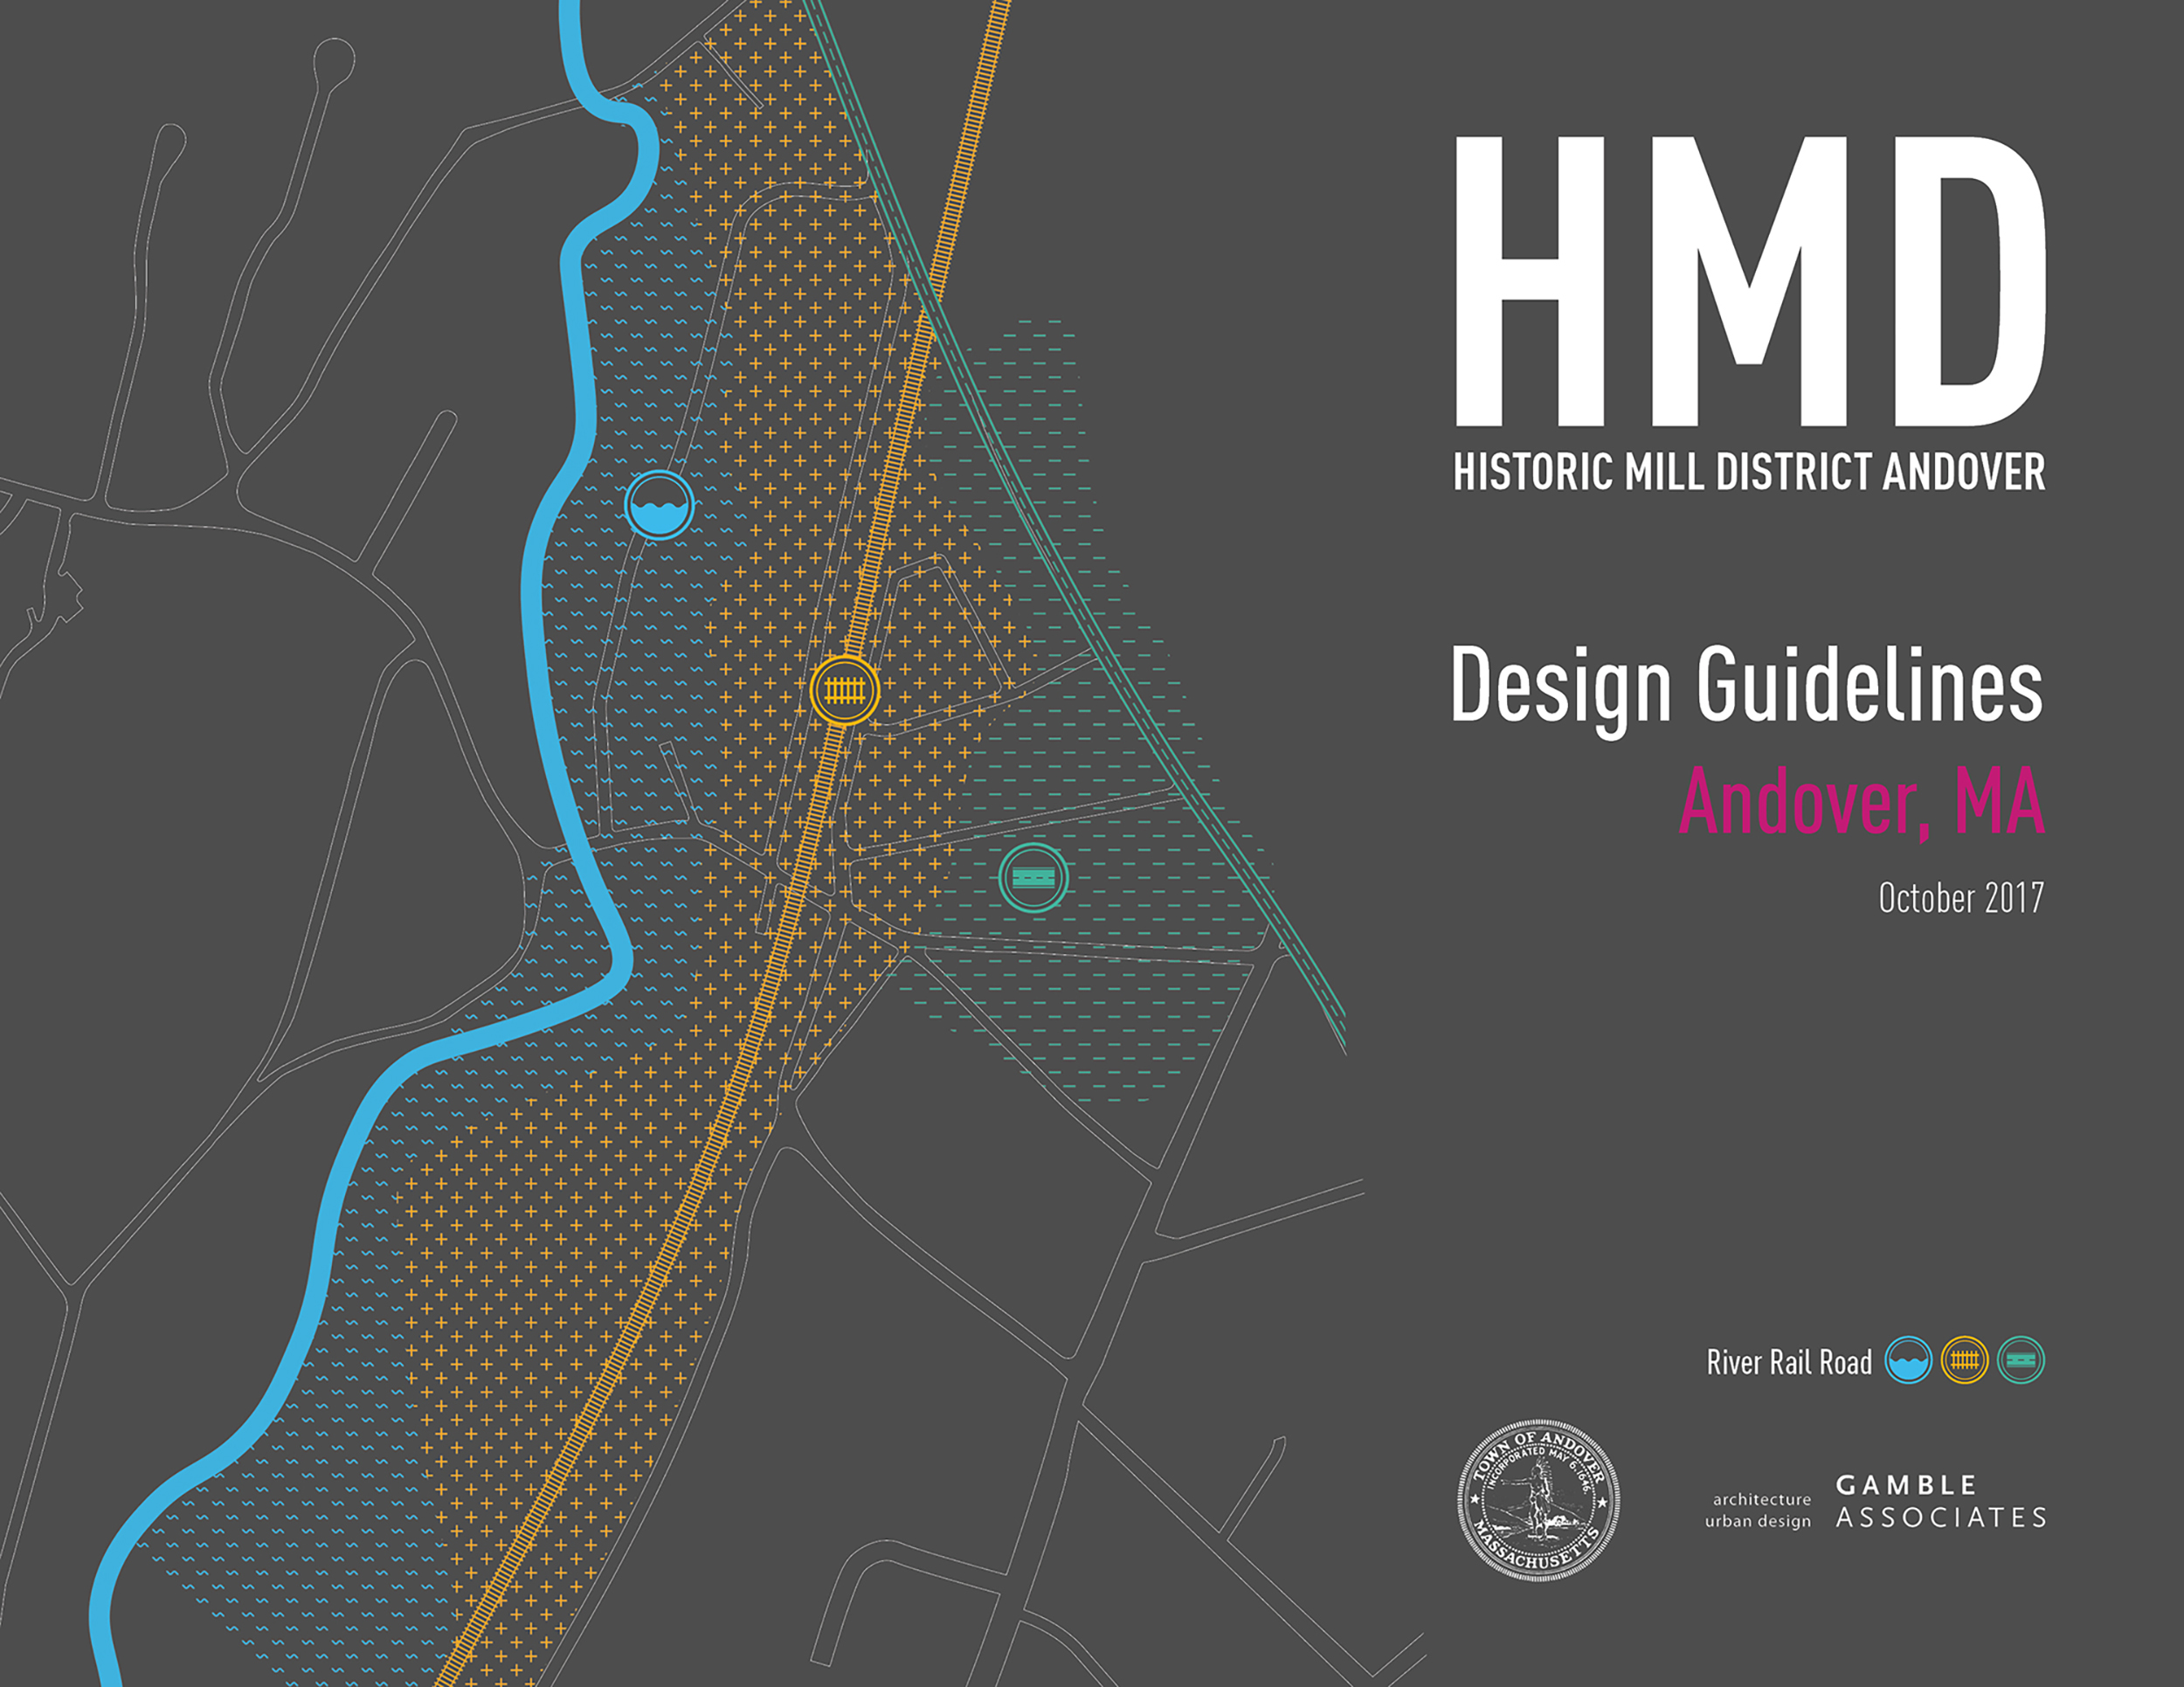 Gamble Associates_Historic Mill District Design Guidelines (1).jpg